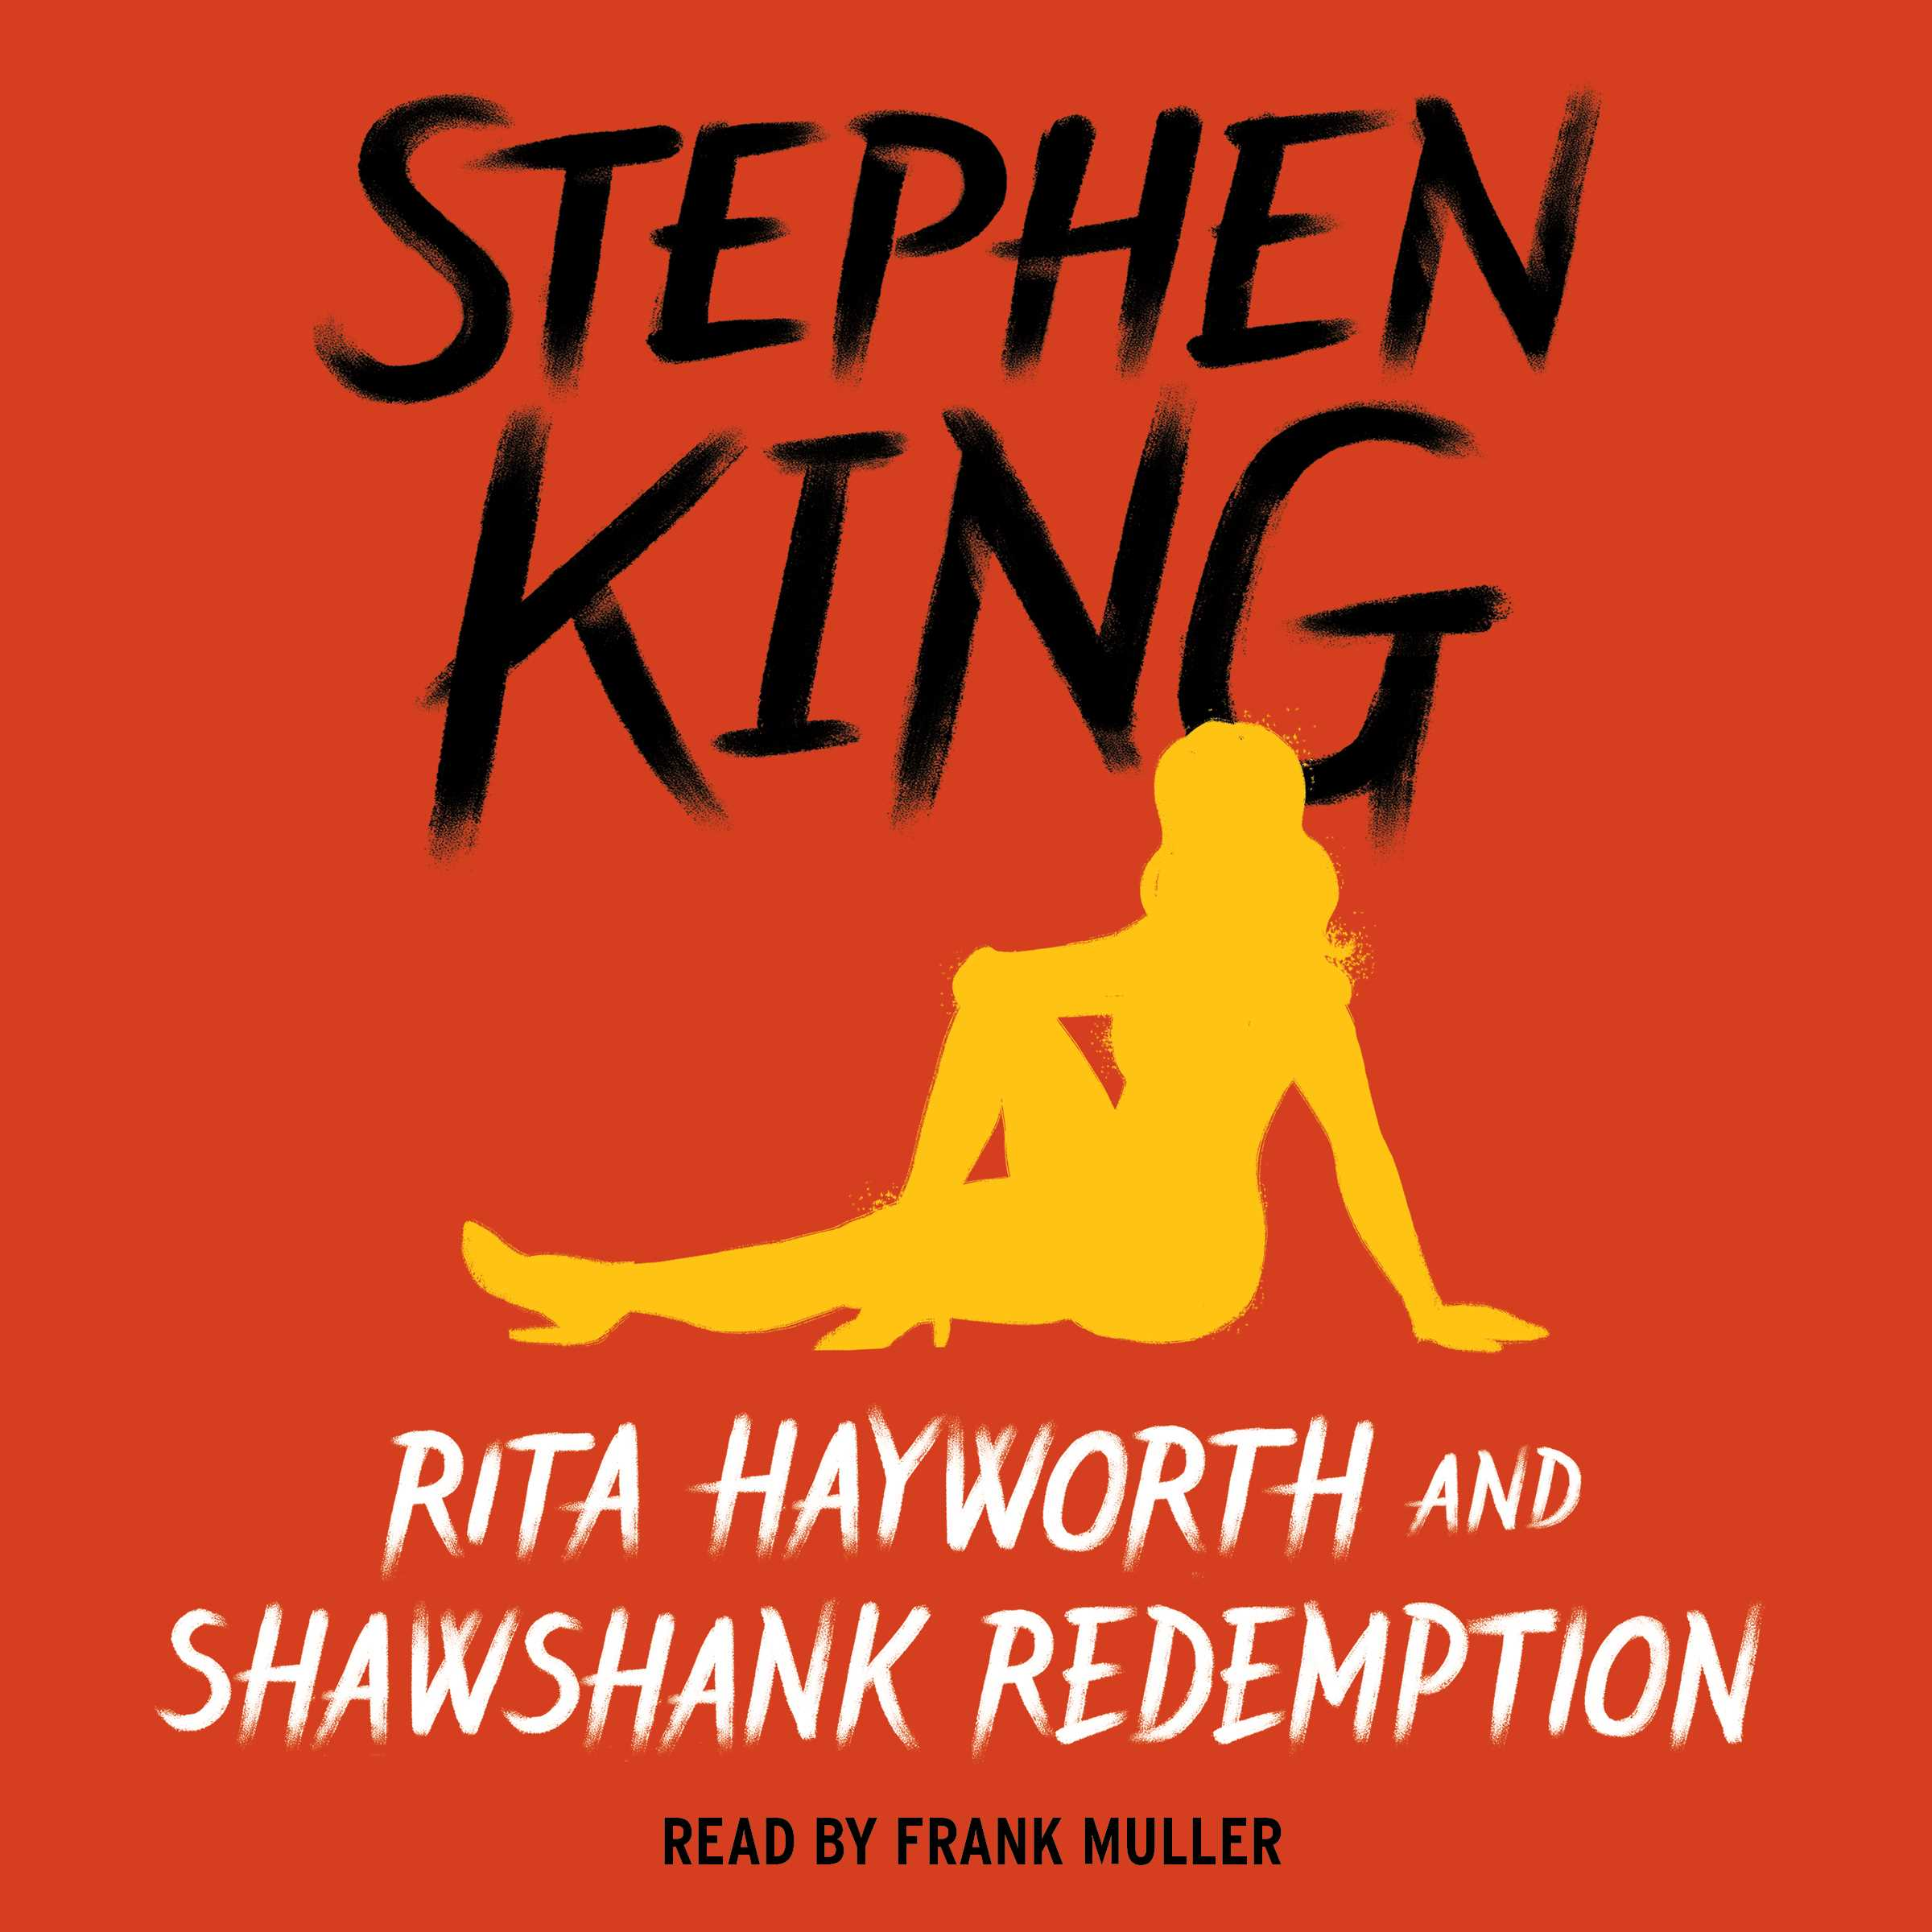 Rita Hayworth And Shawshank Redemption Book Cover